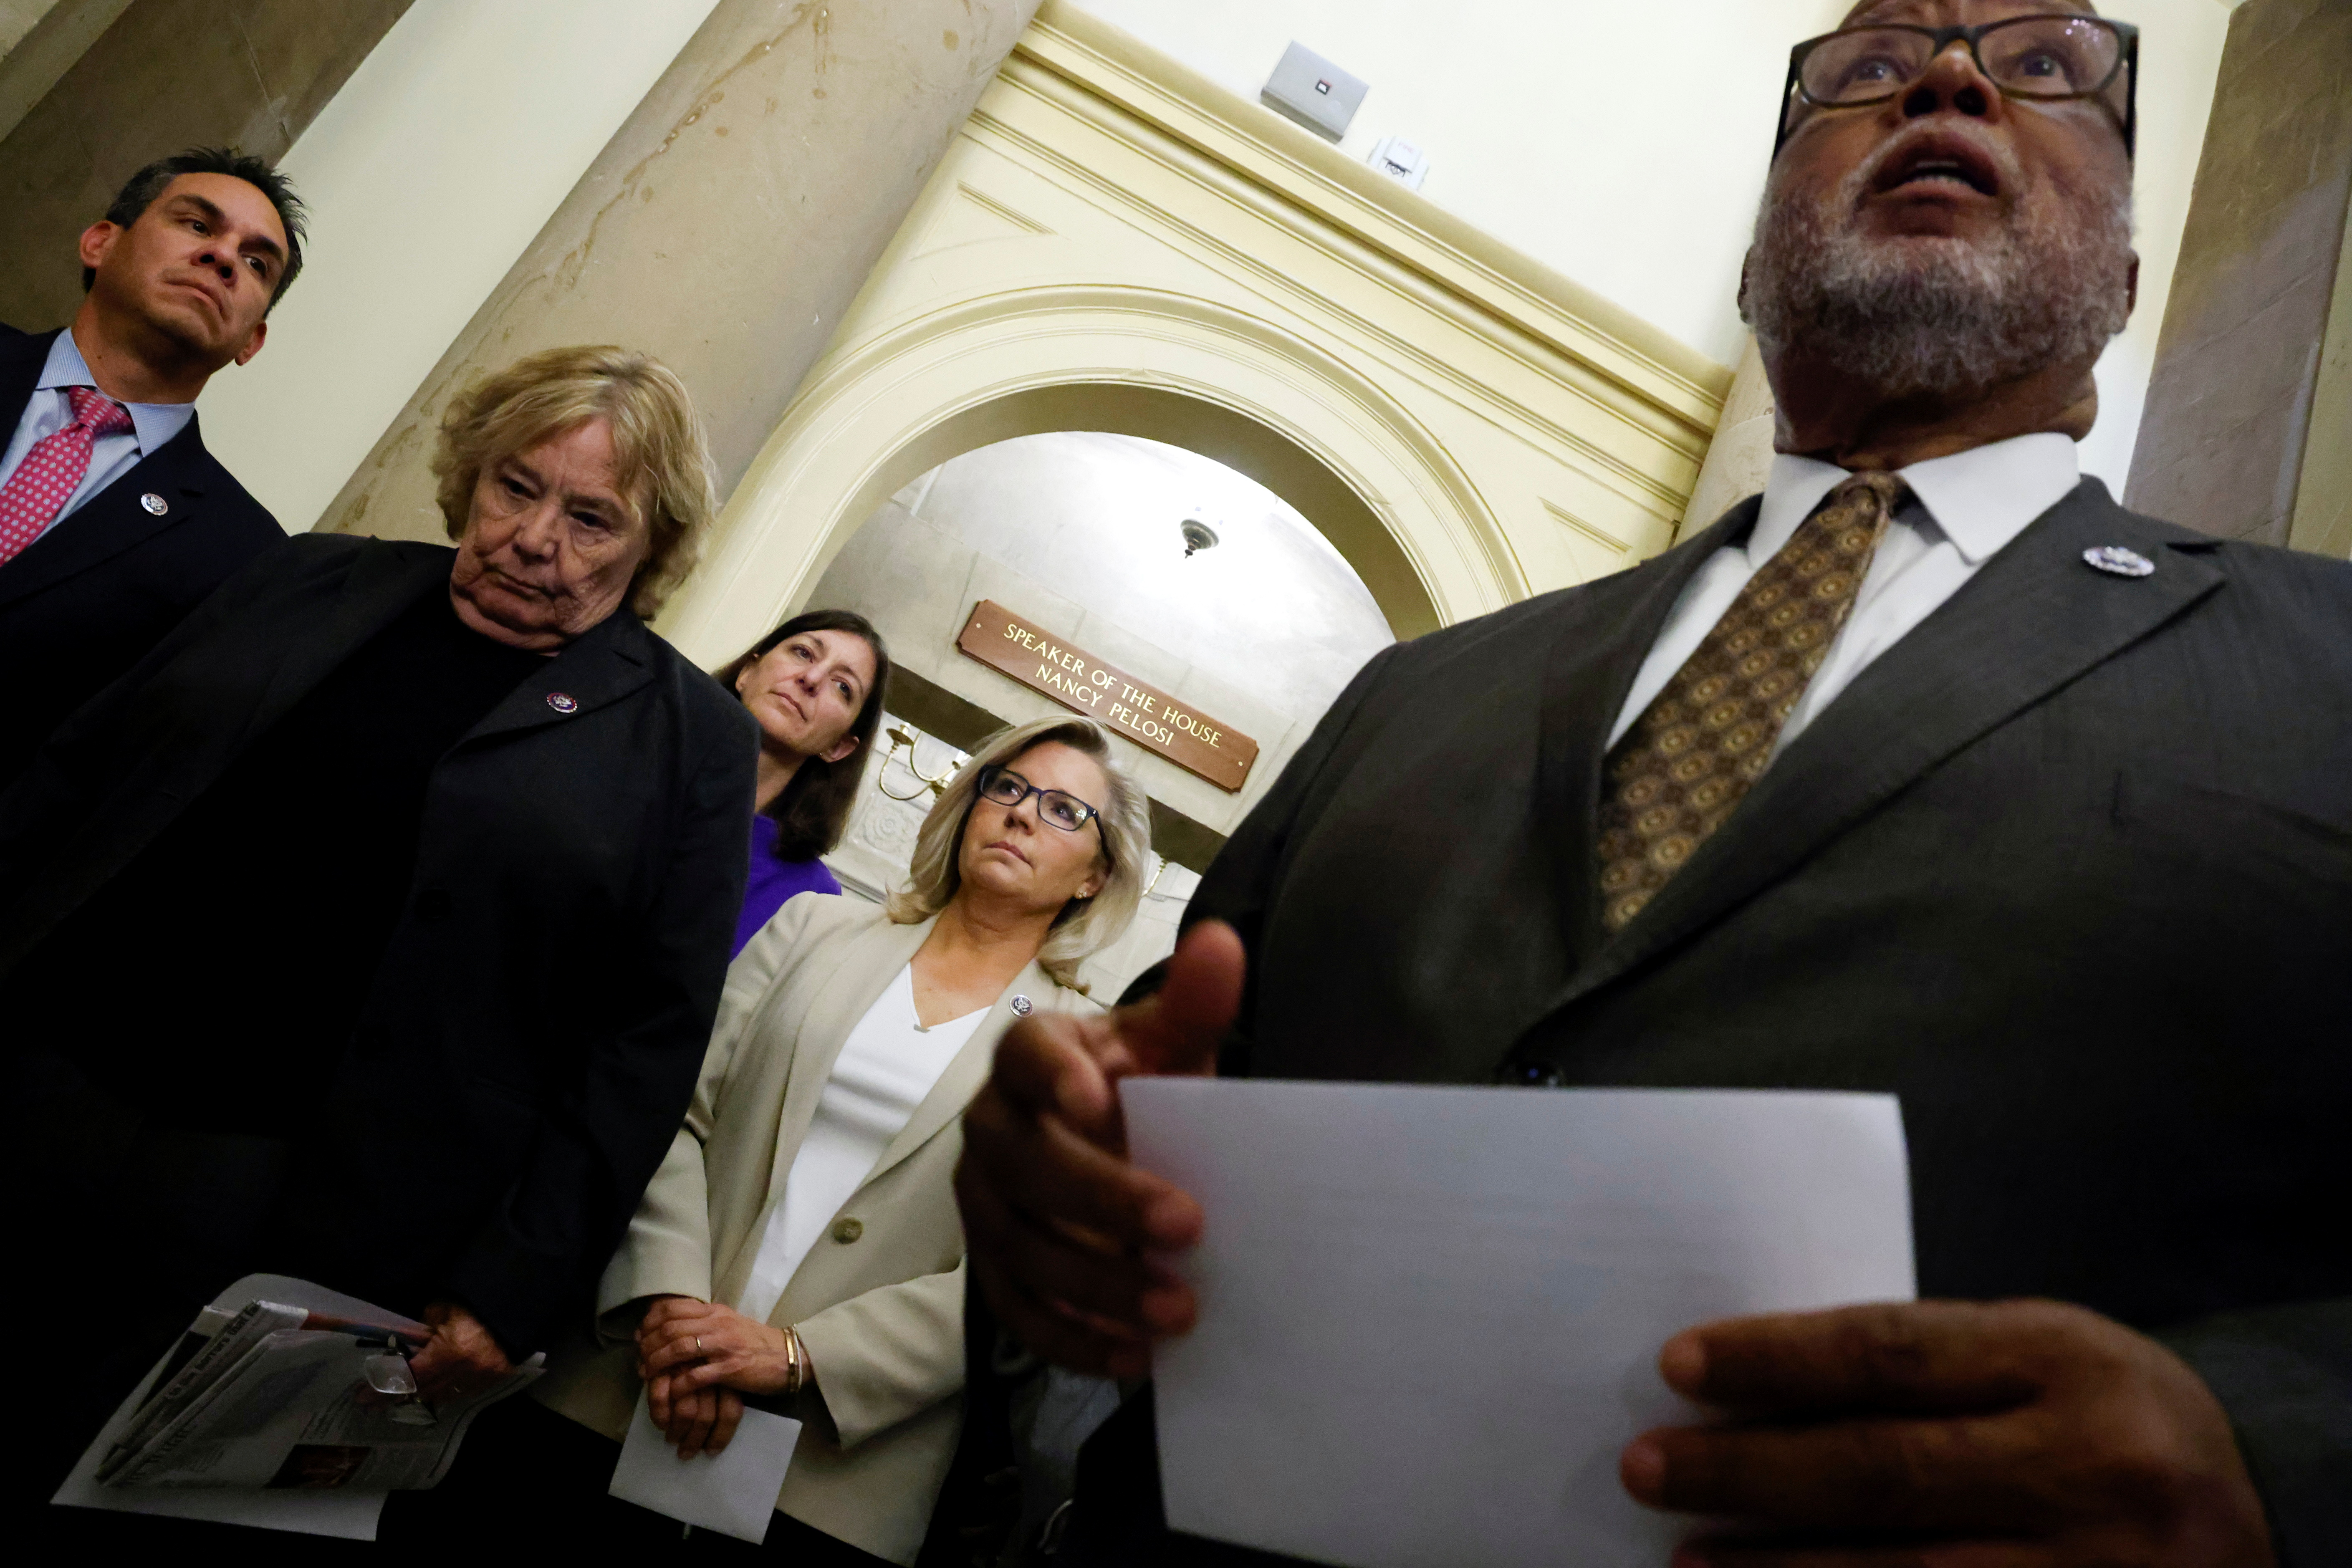 U.S. Representative Bennie Thompson (D-MS), chairman of the Select Committee to Investigate the January 6th Attack on the U.S. Capitol, is flanked by Rep. Pete Aguilar (D-CA), Rep. Zoe Lofgren (D-CA), Rep. Elaine Luria (D-VA) and Rep. Liz Cheney (R-WY) as he speaks to reporters after the committee met with House Speaker Nancy Pelosi (D-CA) at the Capitol in Washington, U.S. July 1, 2021.  REUTERS/Jonathan Ernst